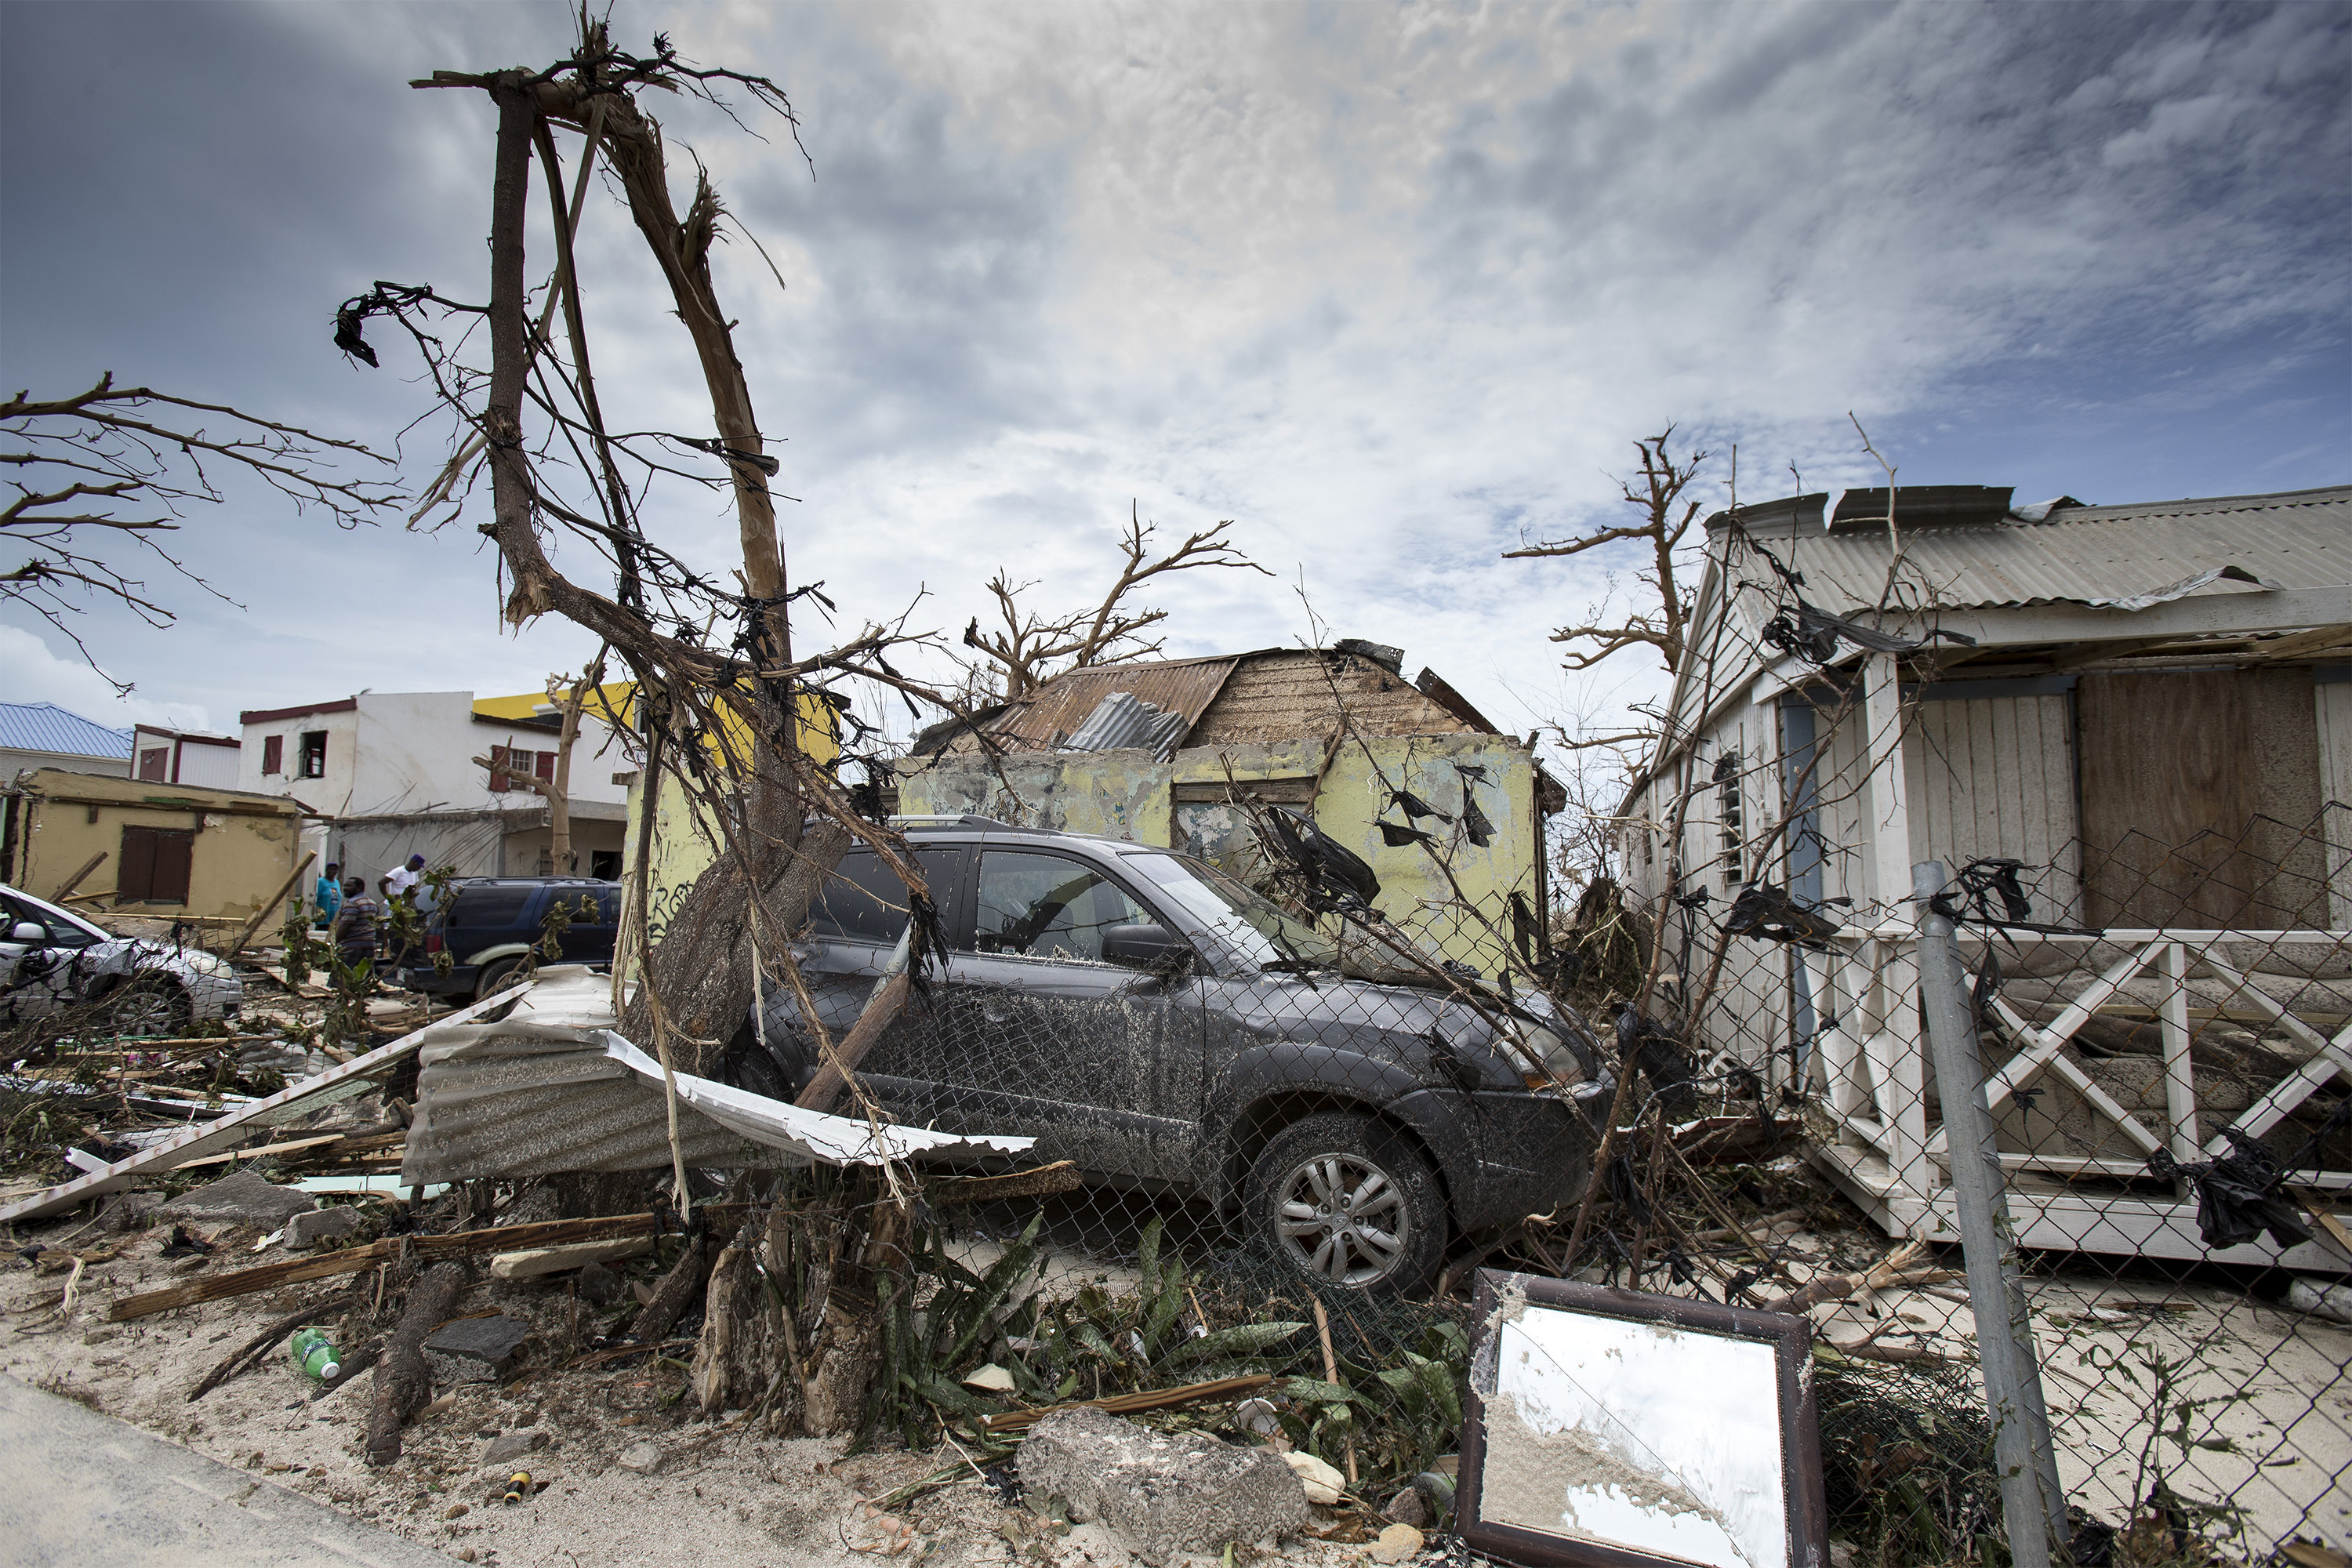 """<div class=""""meta image-caption""""><div class=""""origin-logo origin-image none""""><span>none</span></div><span class=""""caption-text"""">This Sept. 7, 2017 photo provided by the Dutch Defense Ministry shows storm damage in the aftermath of Hurricane Irma, in St. Maarten. (Gerben Van Es/Dutch Defense Ministry via AP)</span></div>"""